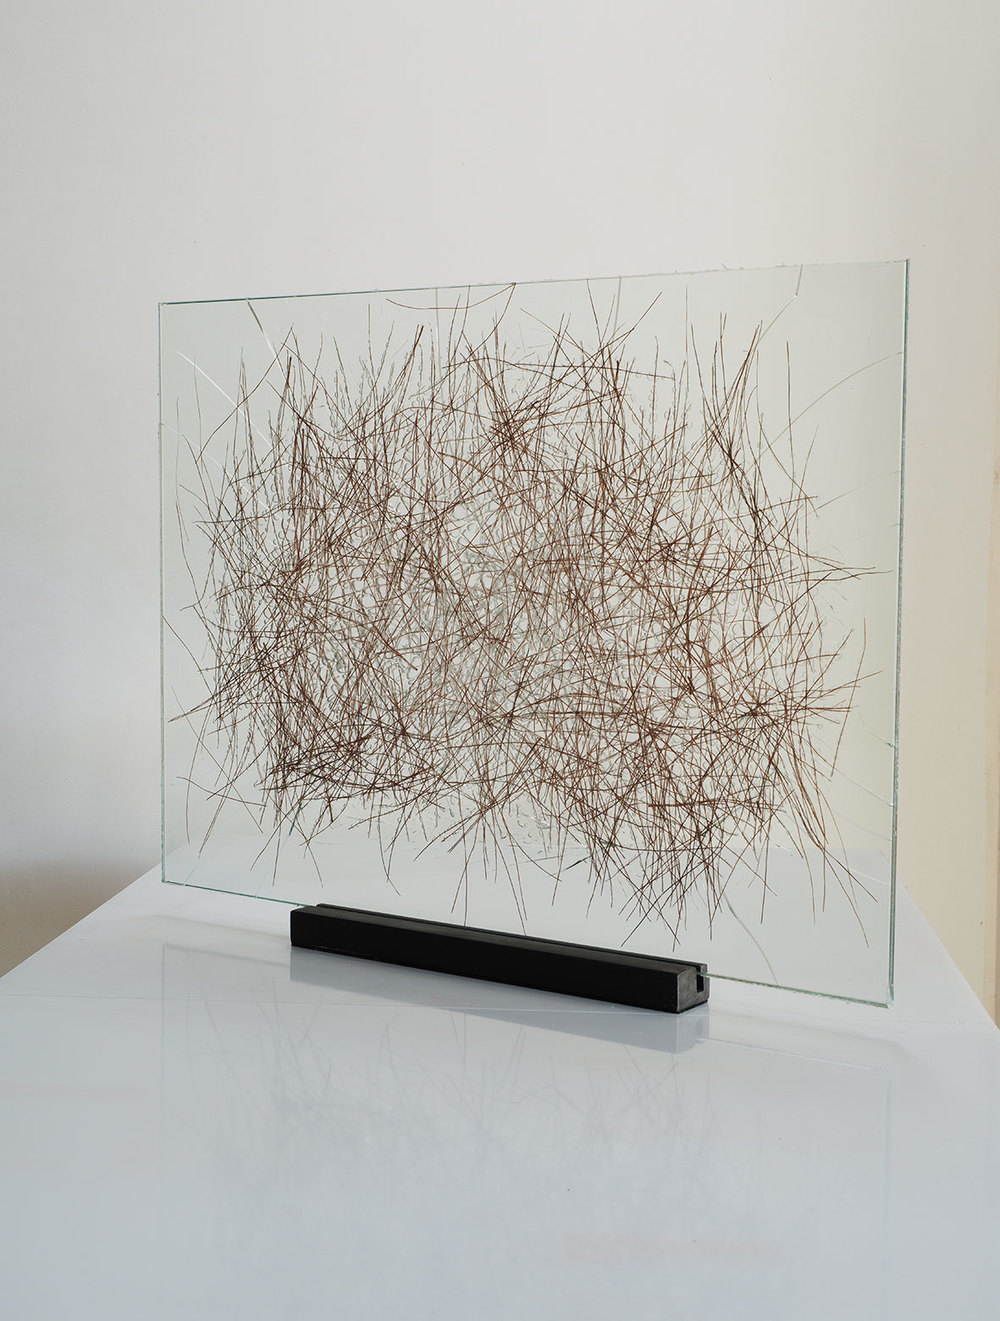 Pine needles insertions in glass, 70x100cm. 2015.